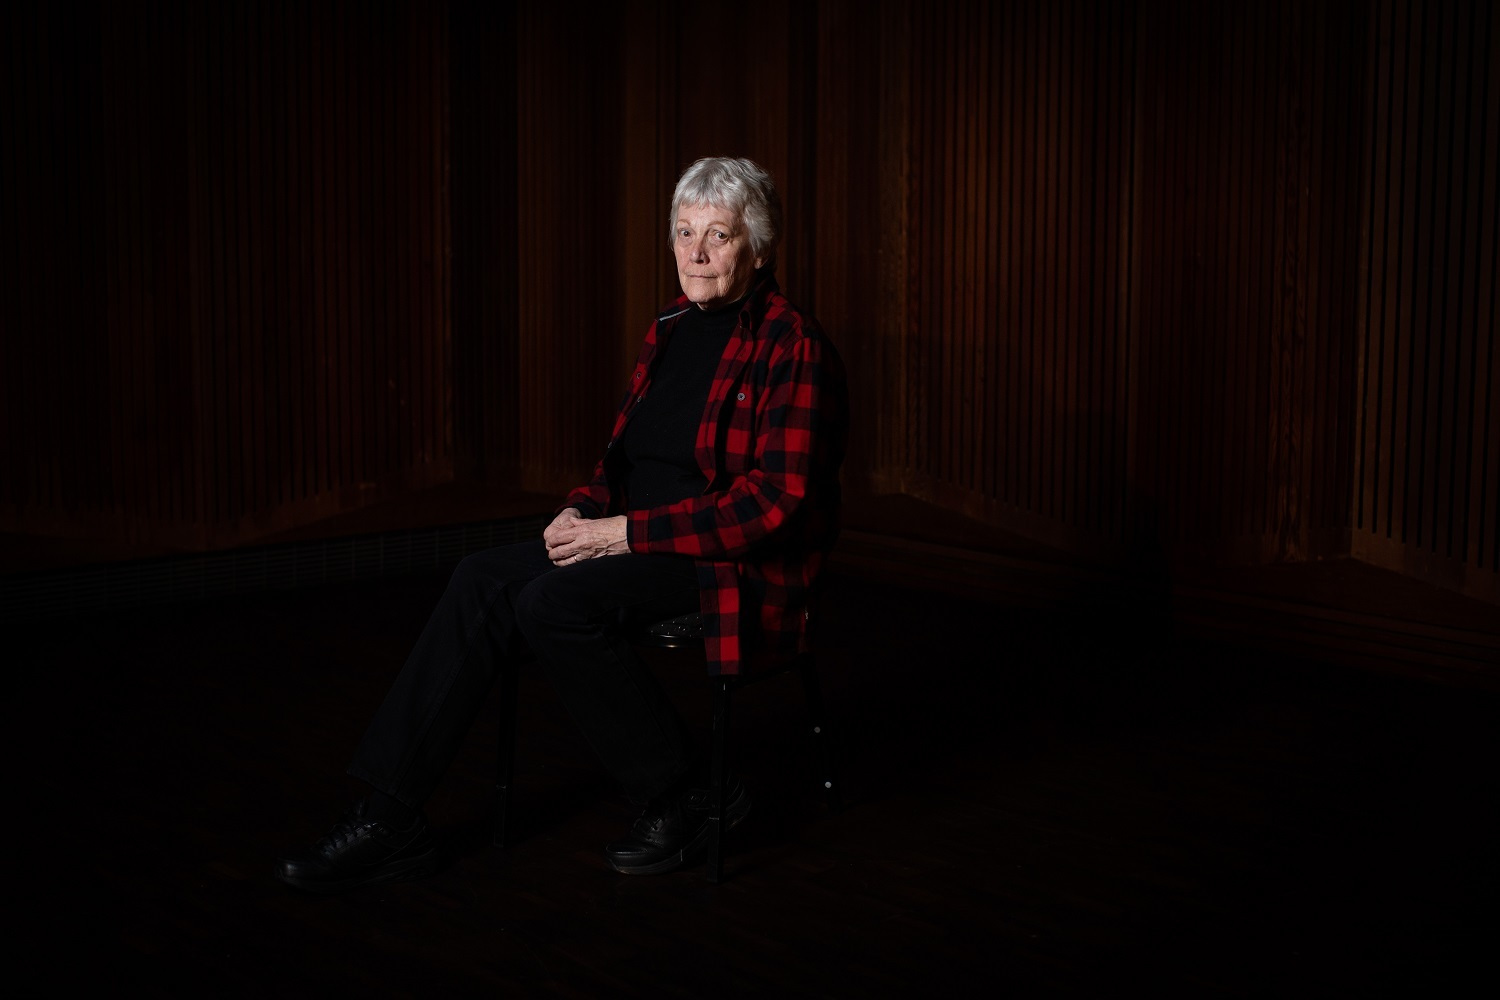 Diane Skippen, 76, is pictured while participating in an intergenerational panel on loneliness and connection in Vancouver on Friday, November 15, 2019. (Maggie MacPherson/CBC)